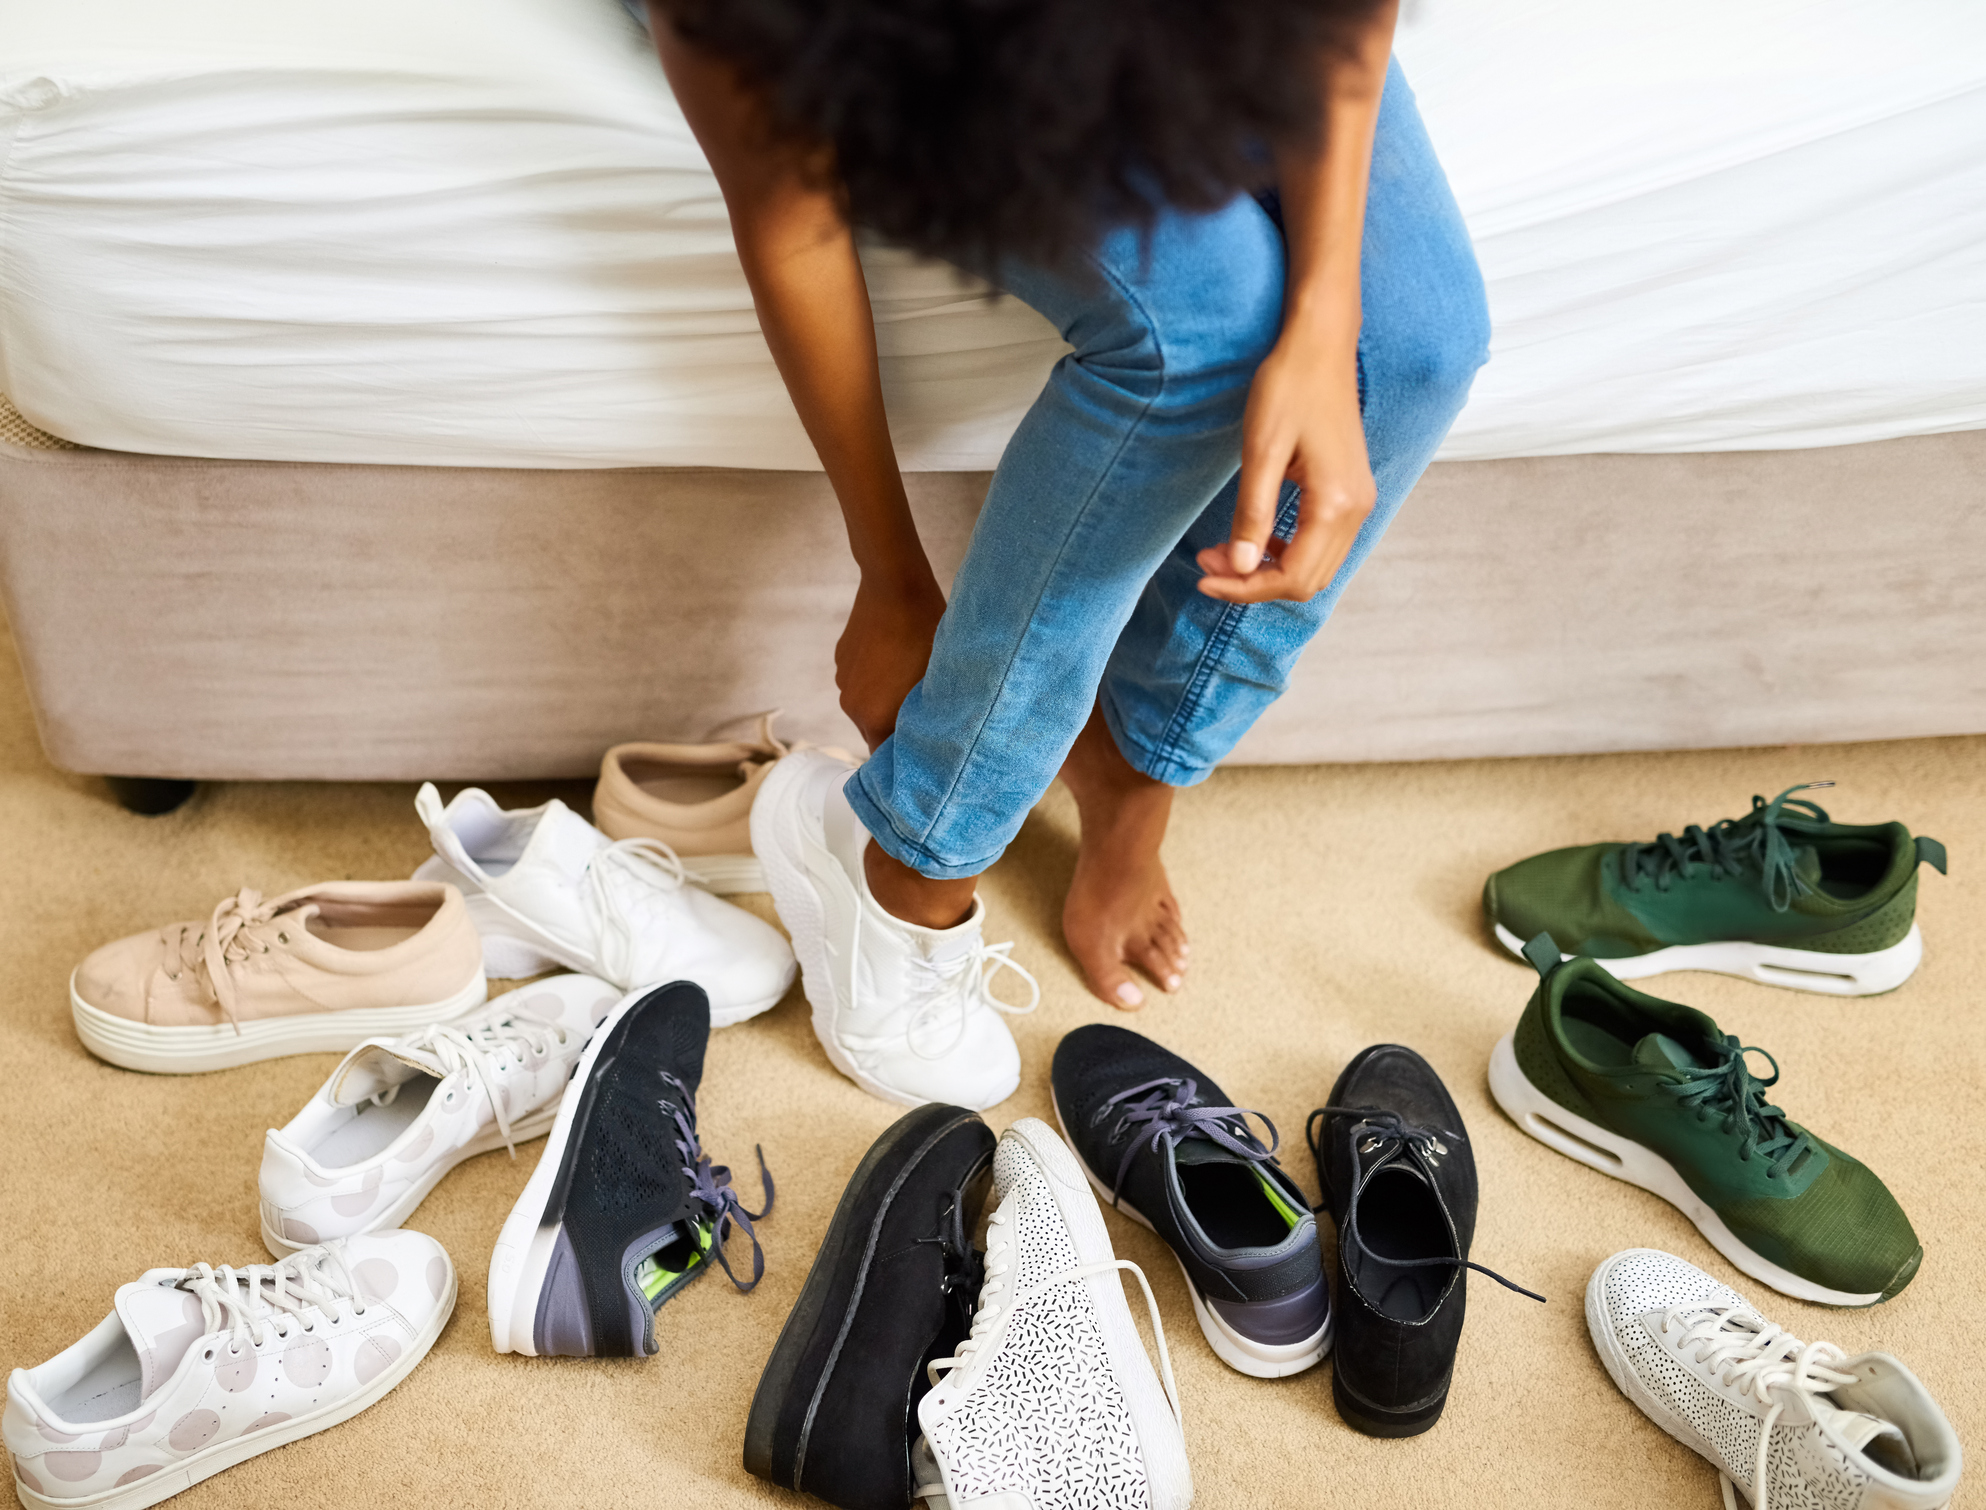 Does Footwear Really Cause Back Pain?